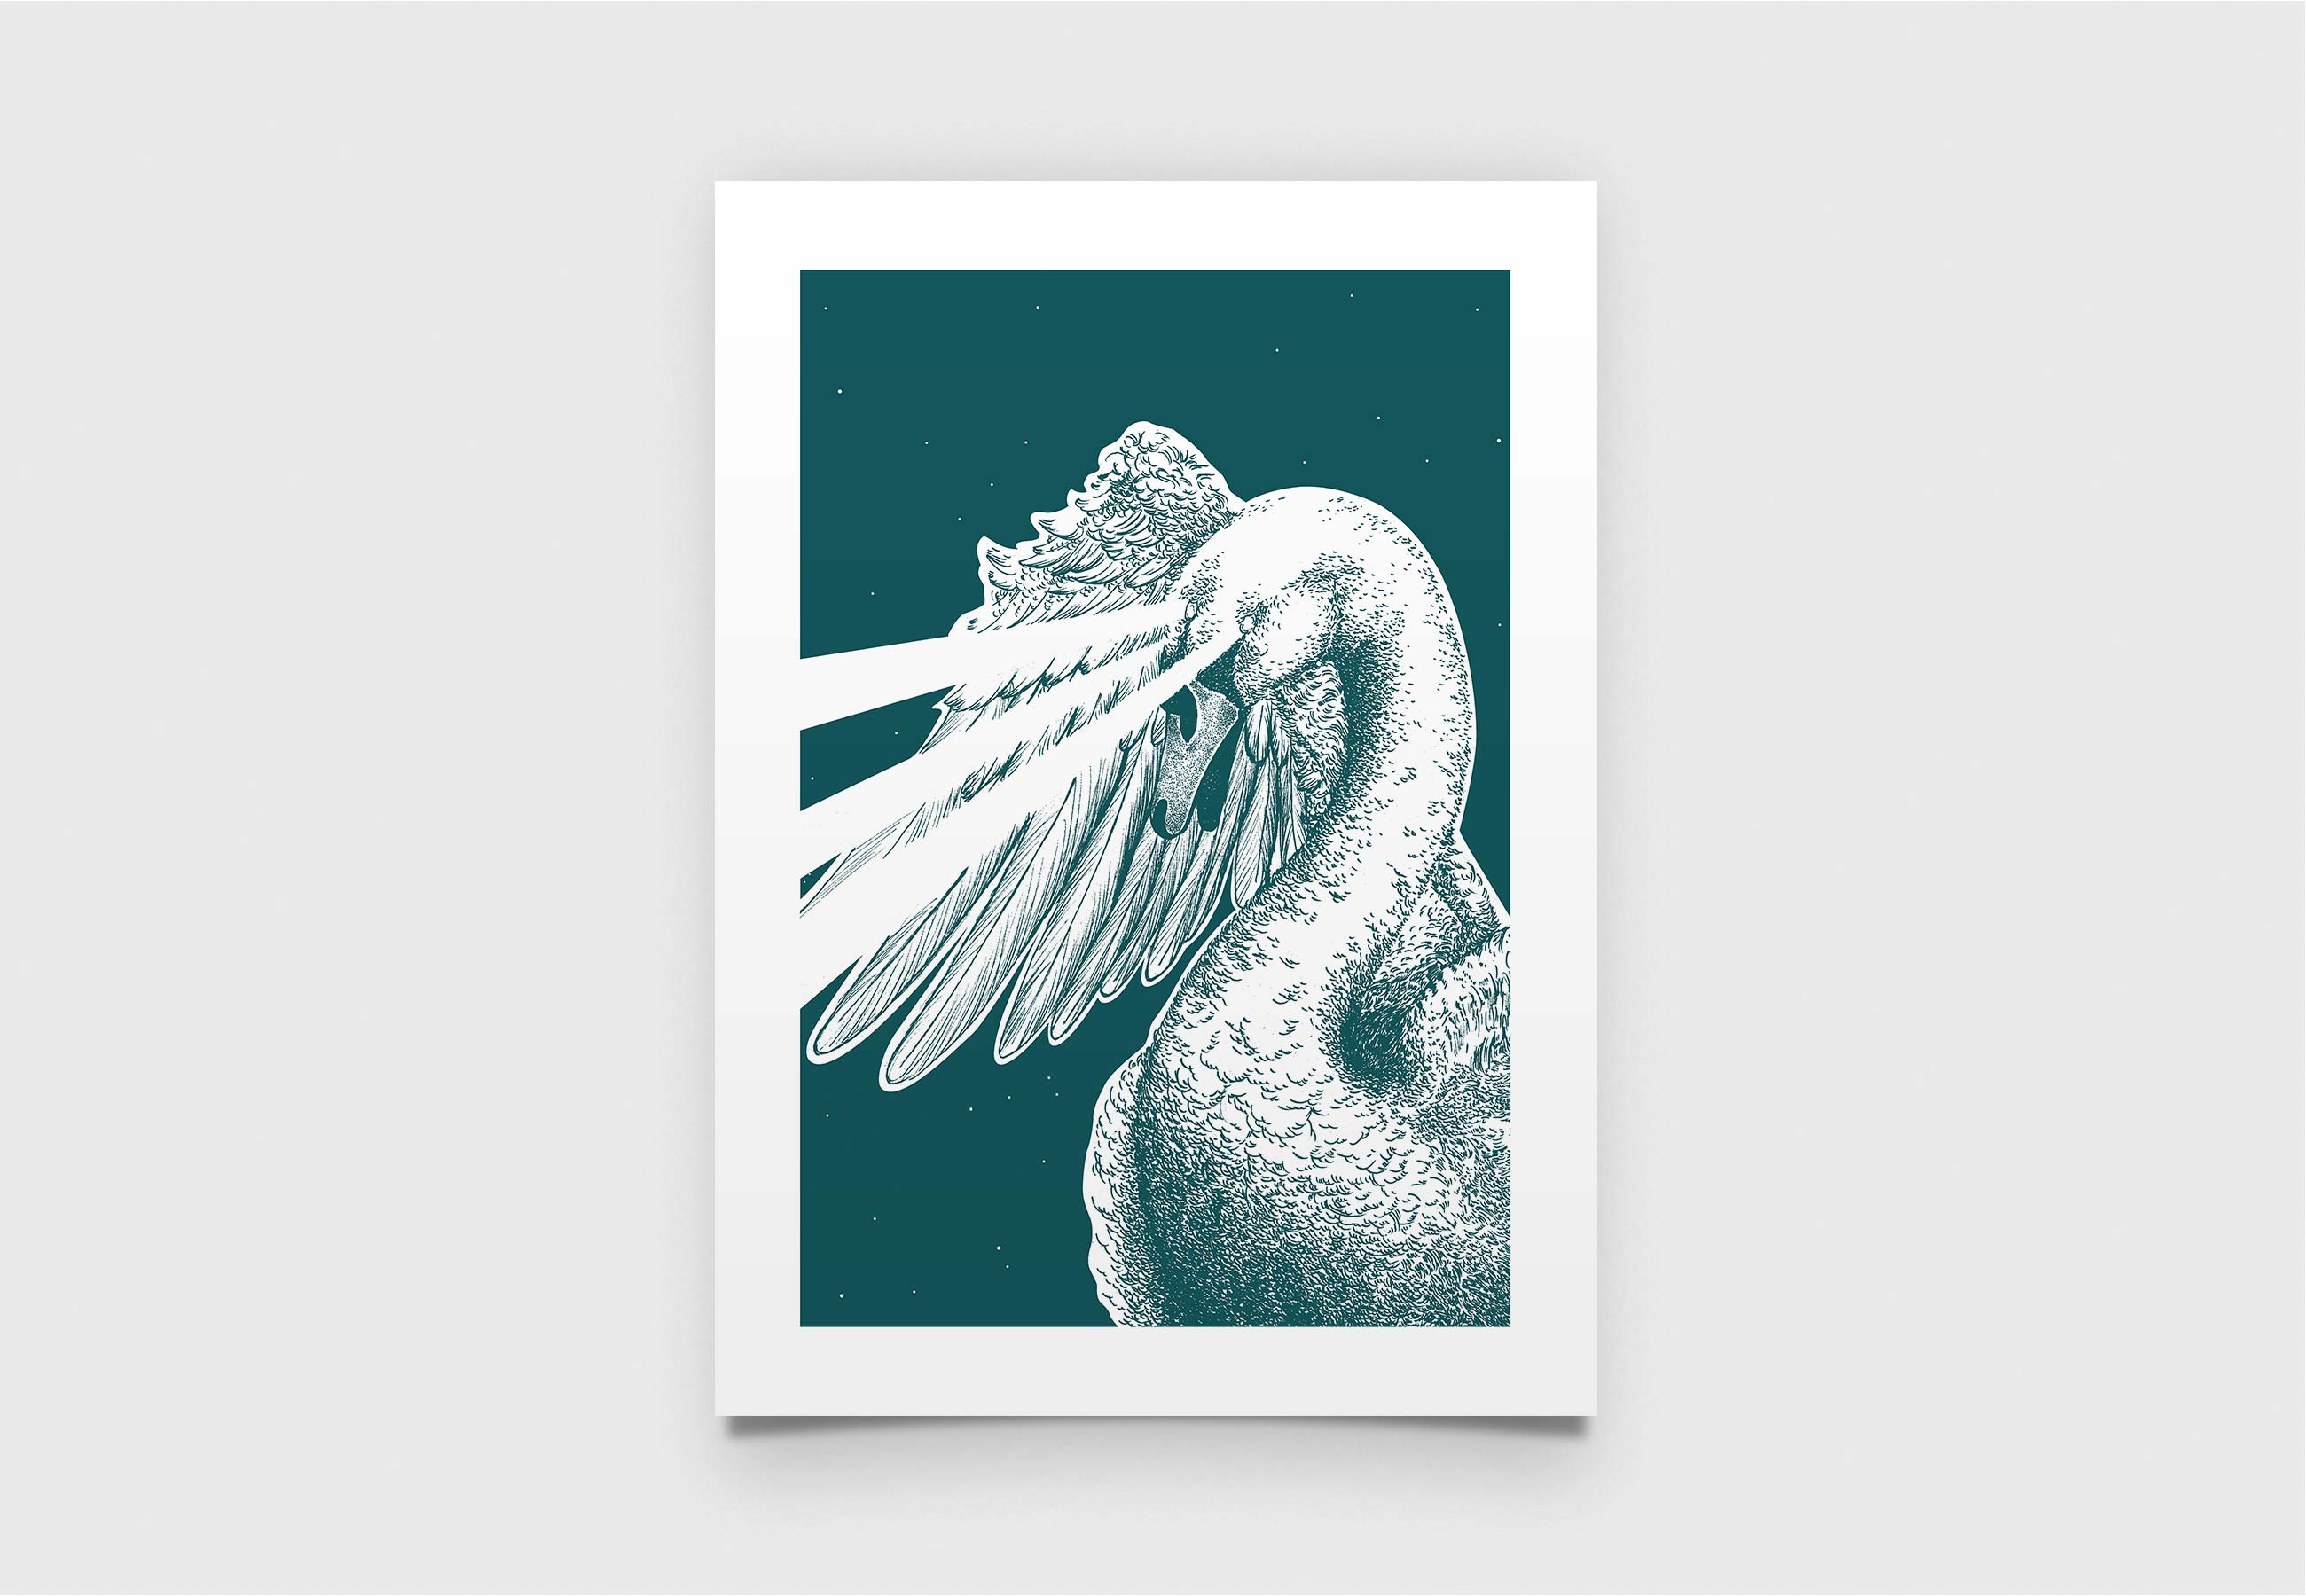 3rd_eye_creatures_swan_parallele_graphique